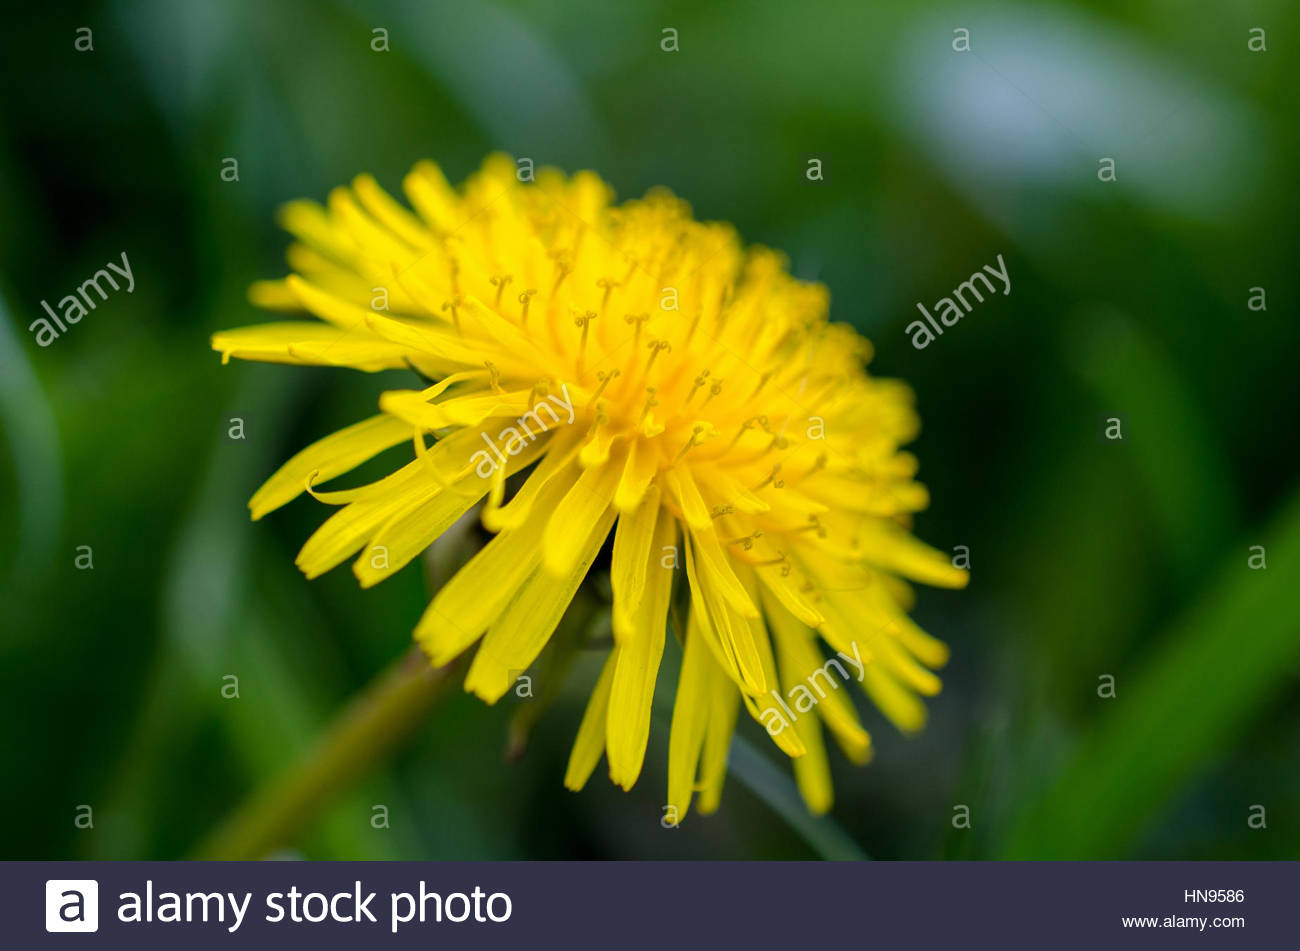 bright yellow spring flowers dandelions - Stock Image